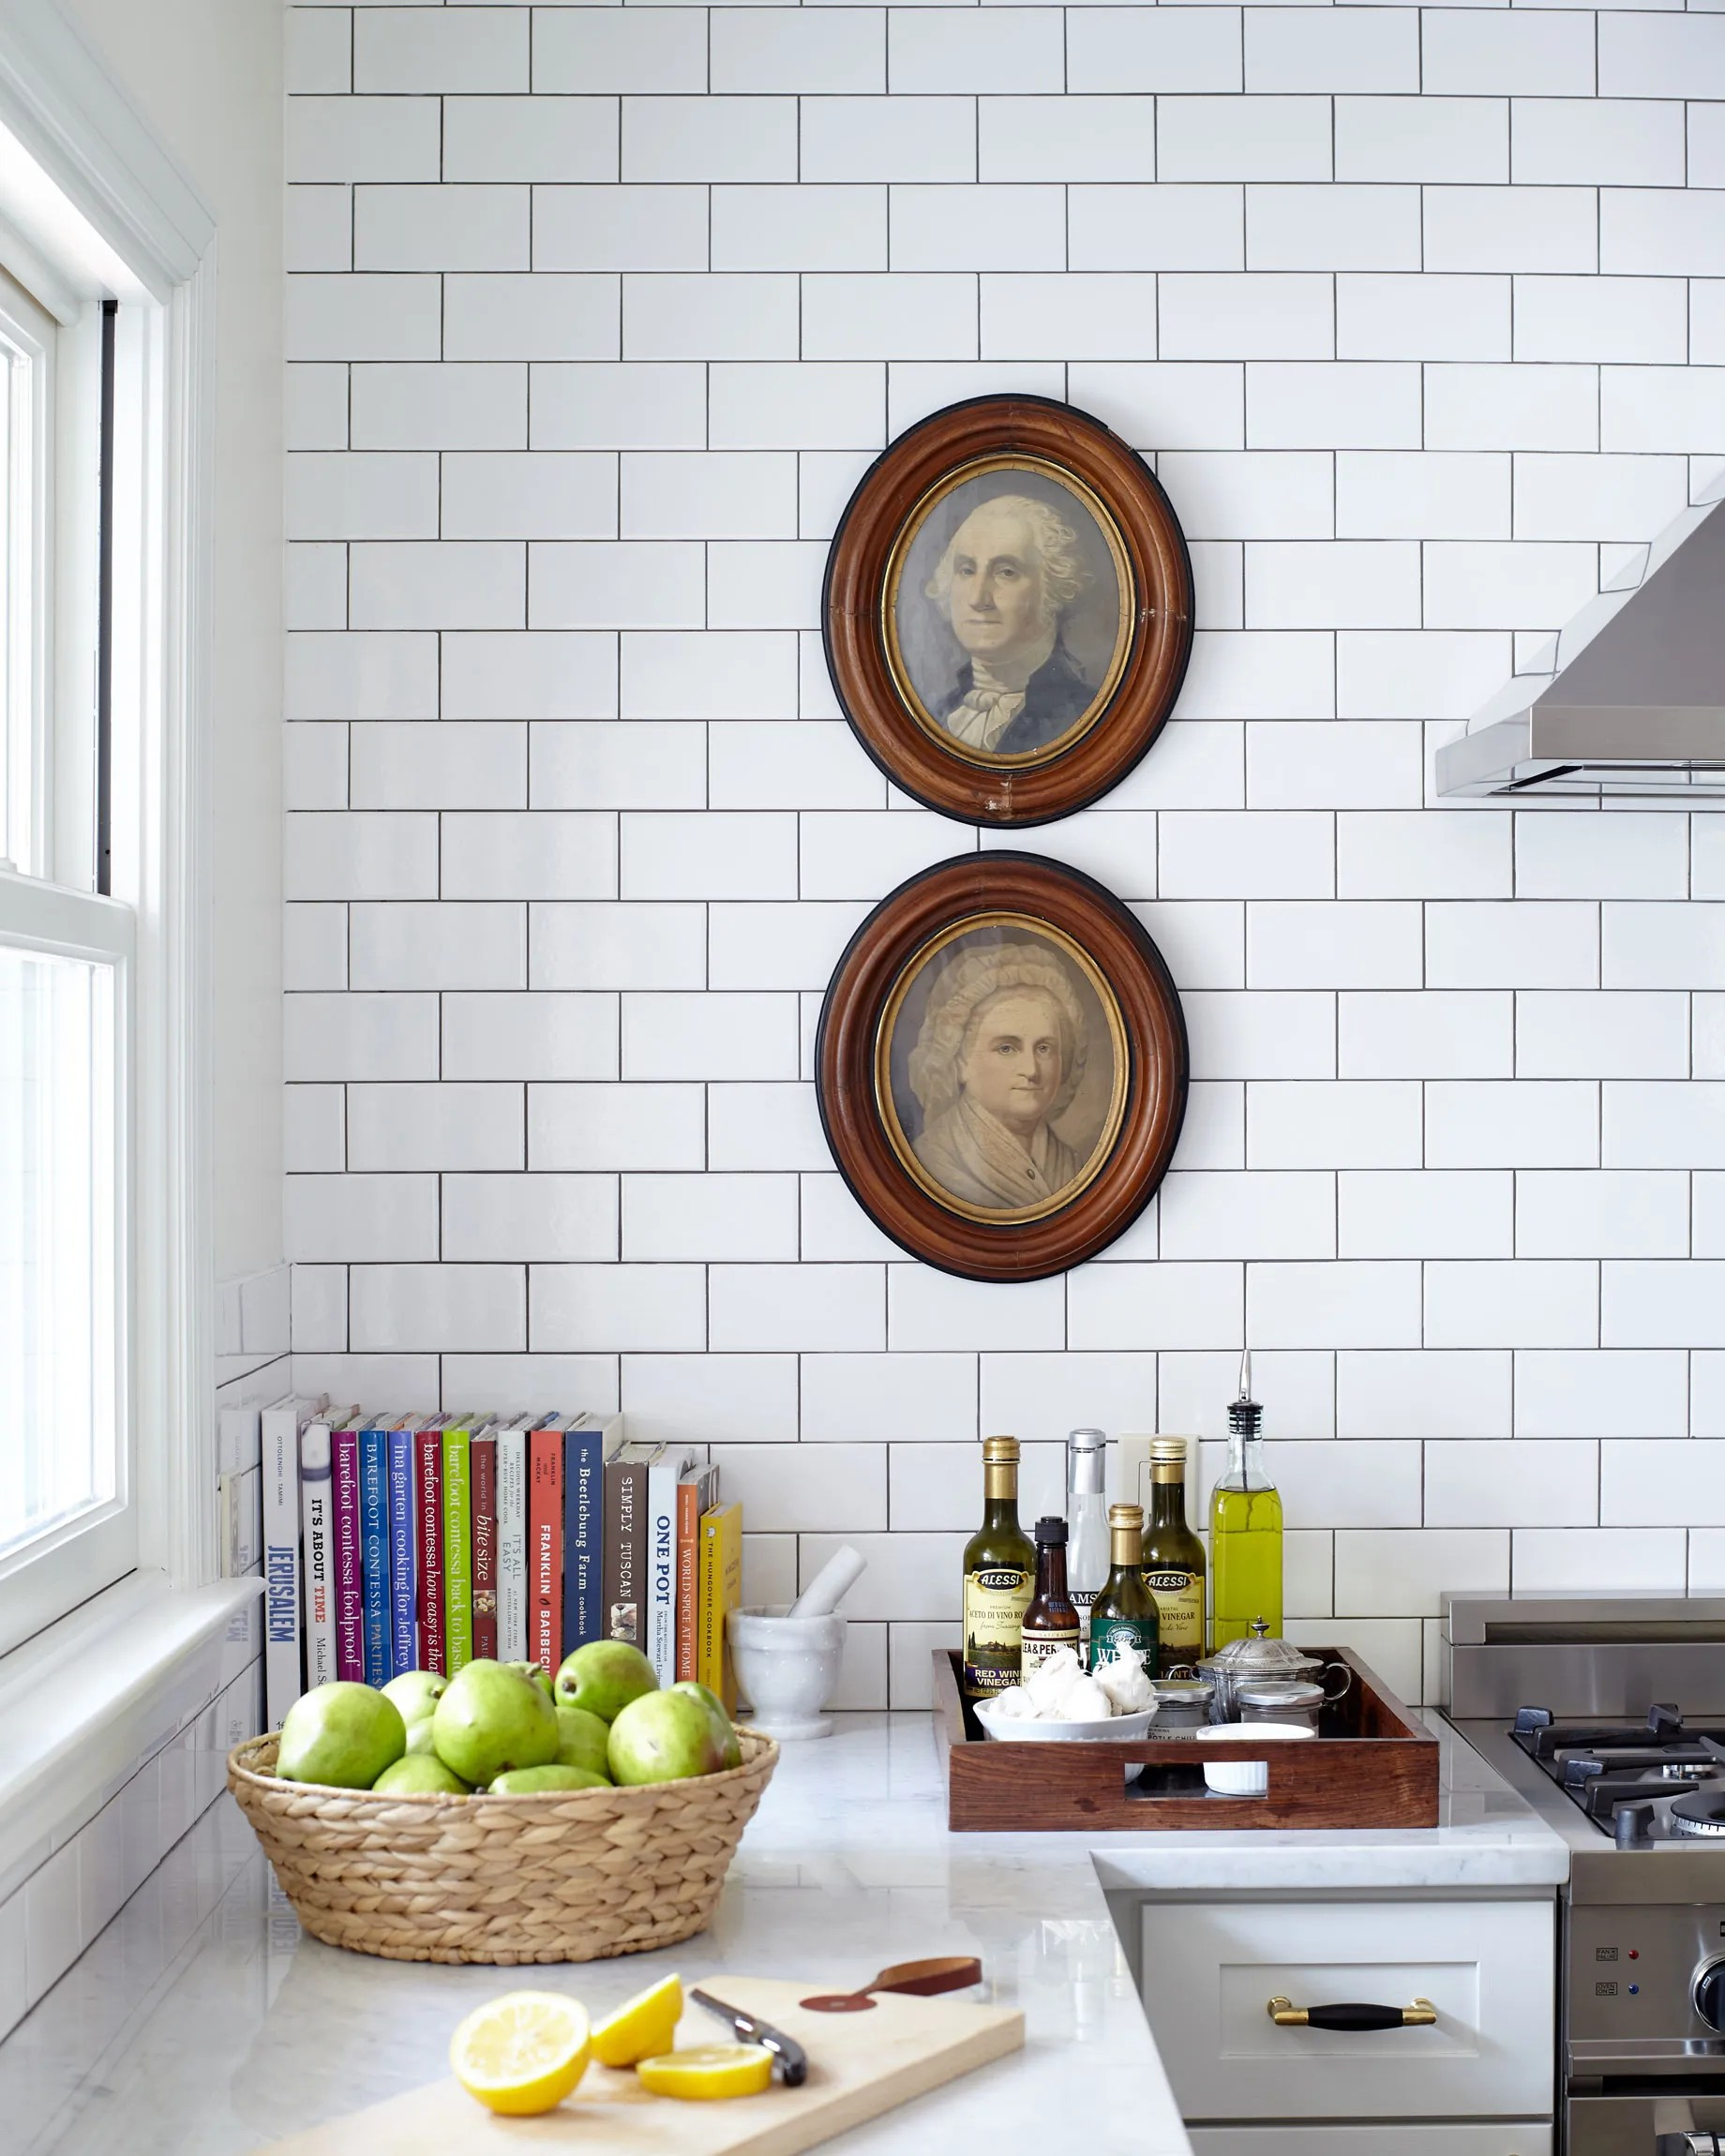 12 Kitchen Wall Decor Ideas: Easy and Creative Style Tips